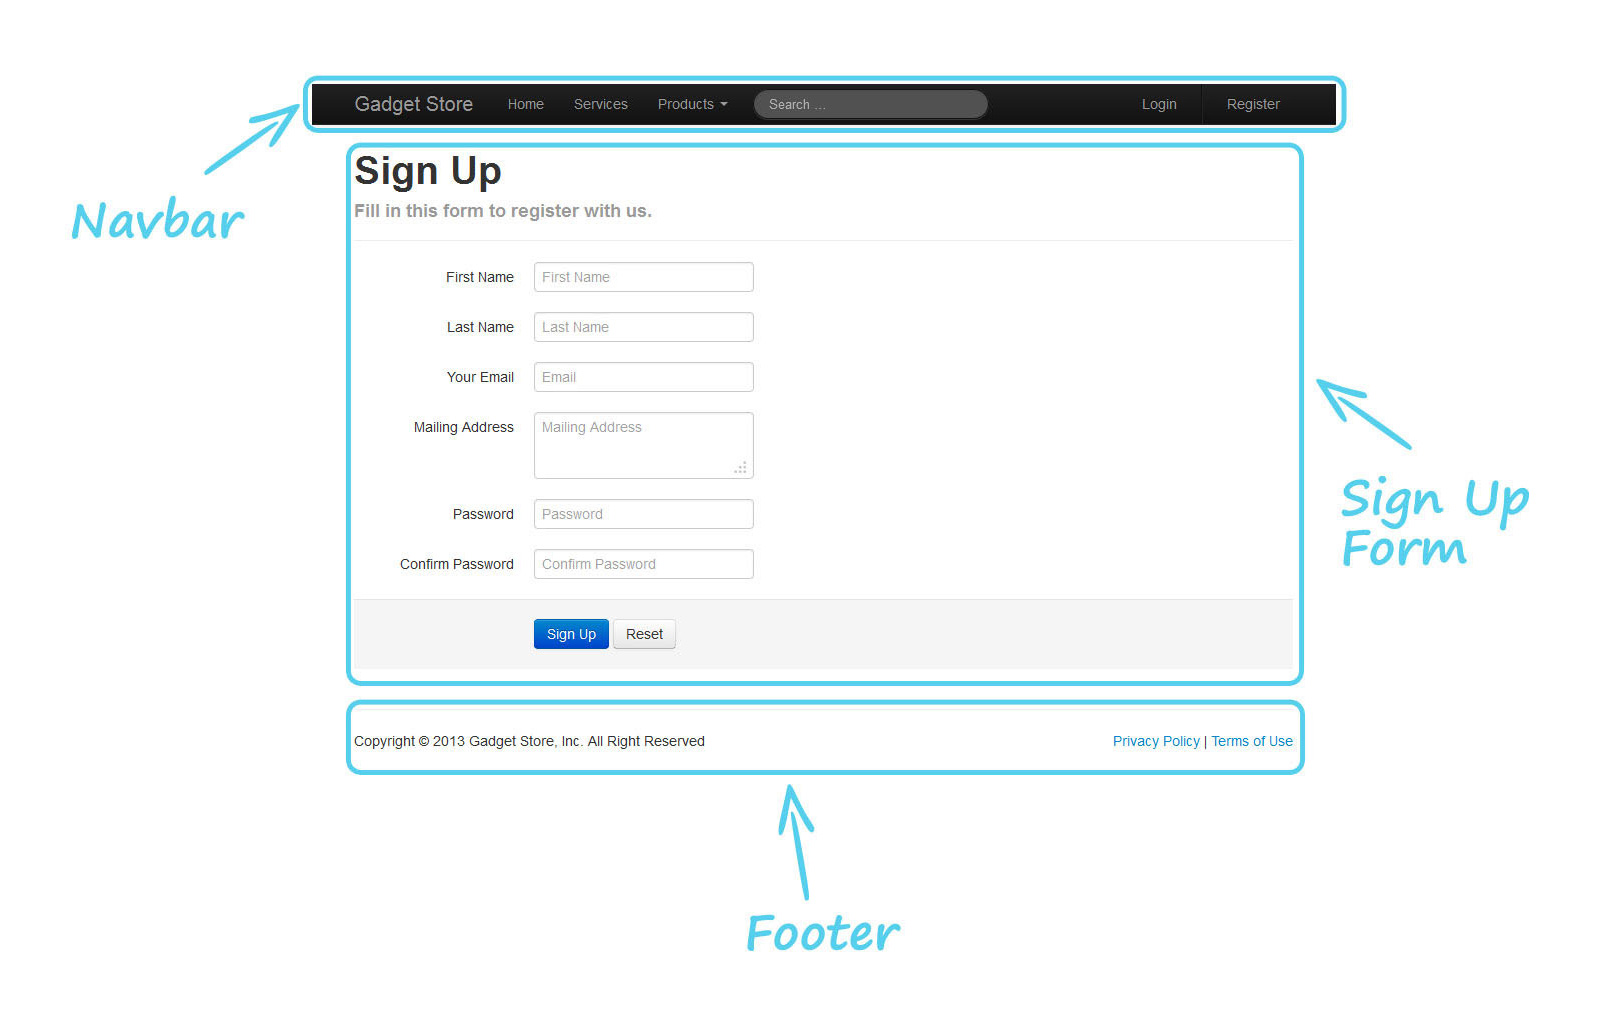 Twitter bootstrap tutorial a quick start guide for beginners sign up page falaconquin